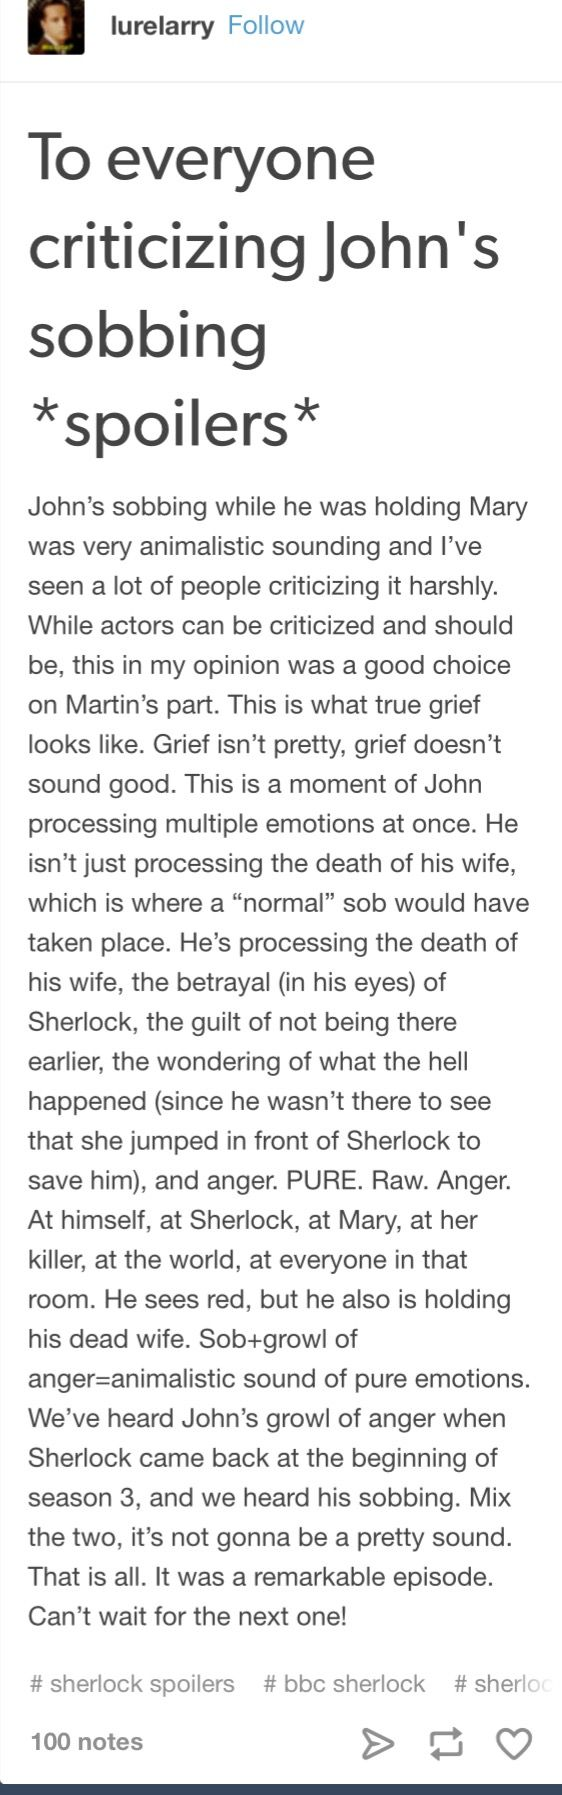 SEASON 4 SPOILERS   I completely agree and at first I wasn't actually sure if it was John or my dog making the sound at the time. But after realising I think it is honestly the best choice of acting for what had just happened.